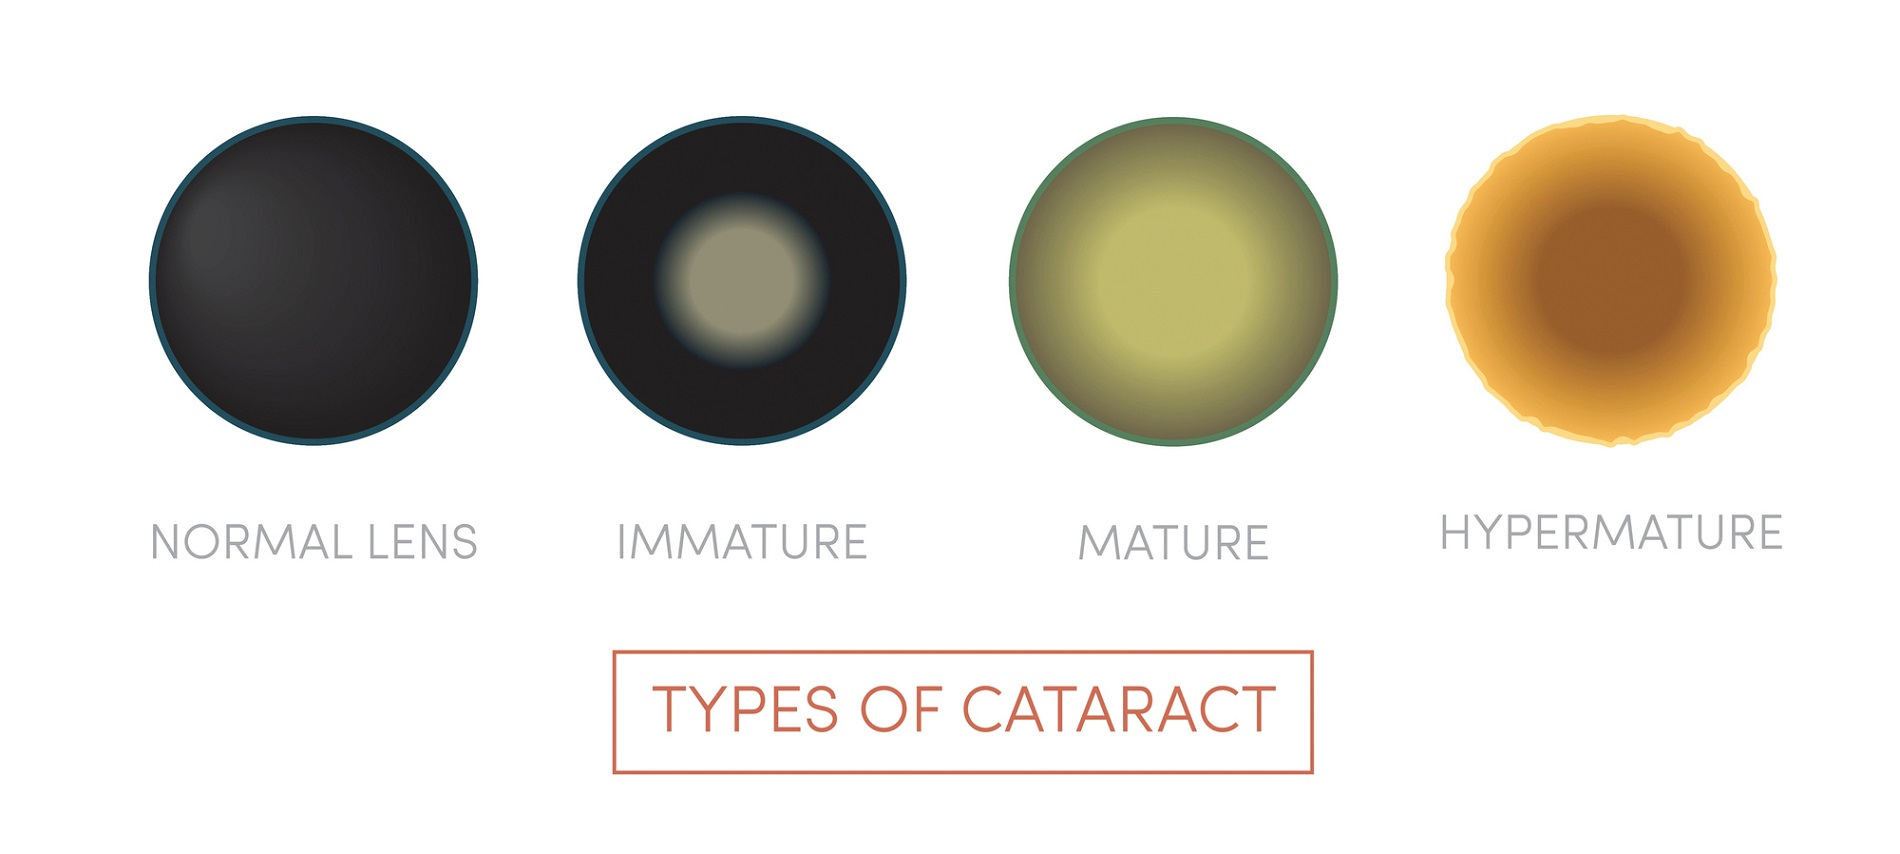 Types of cataract: normal lens, immature, mature, hypermature